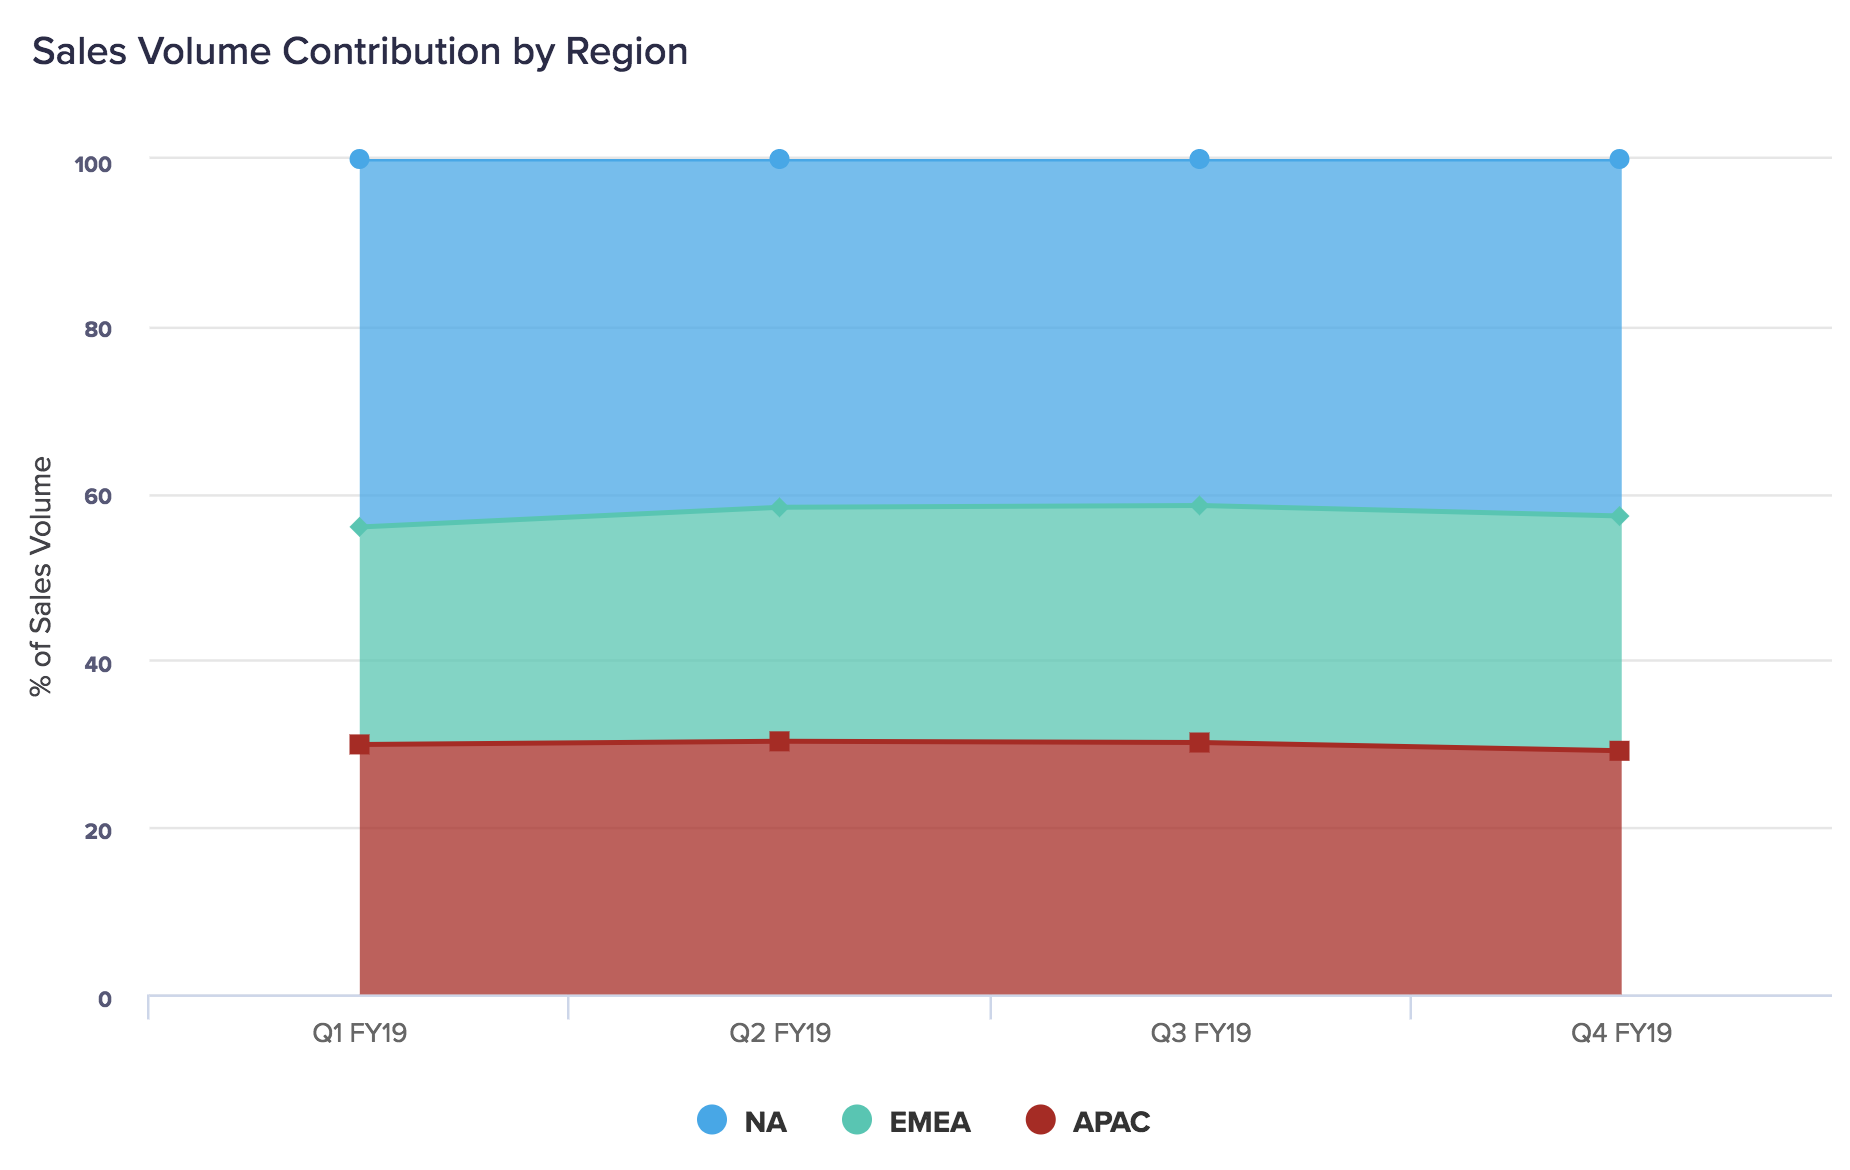 Percentage area chart displaying the percentage of sales volume contribution made by the NA, EMEA, and APAC regions. They are all quite close in contribution, but NA has the most with over 40%, with a slight dip seen in Q2 and Q3.